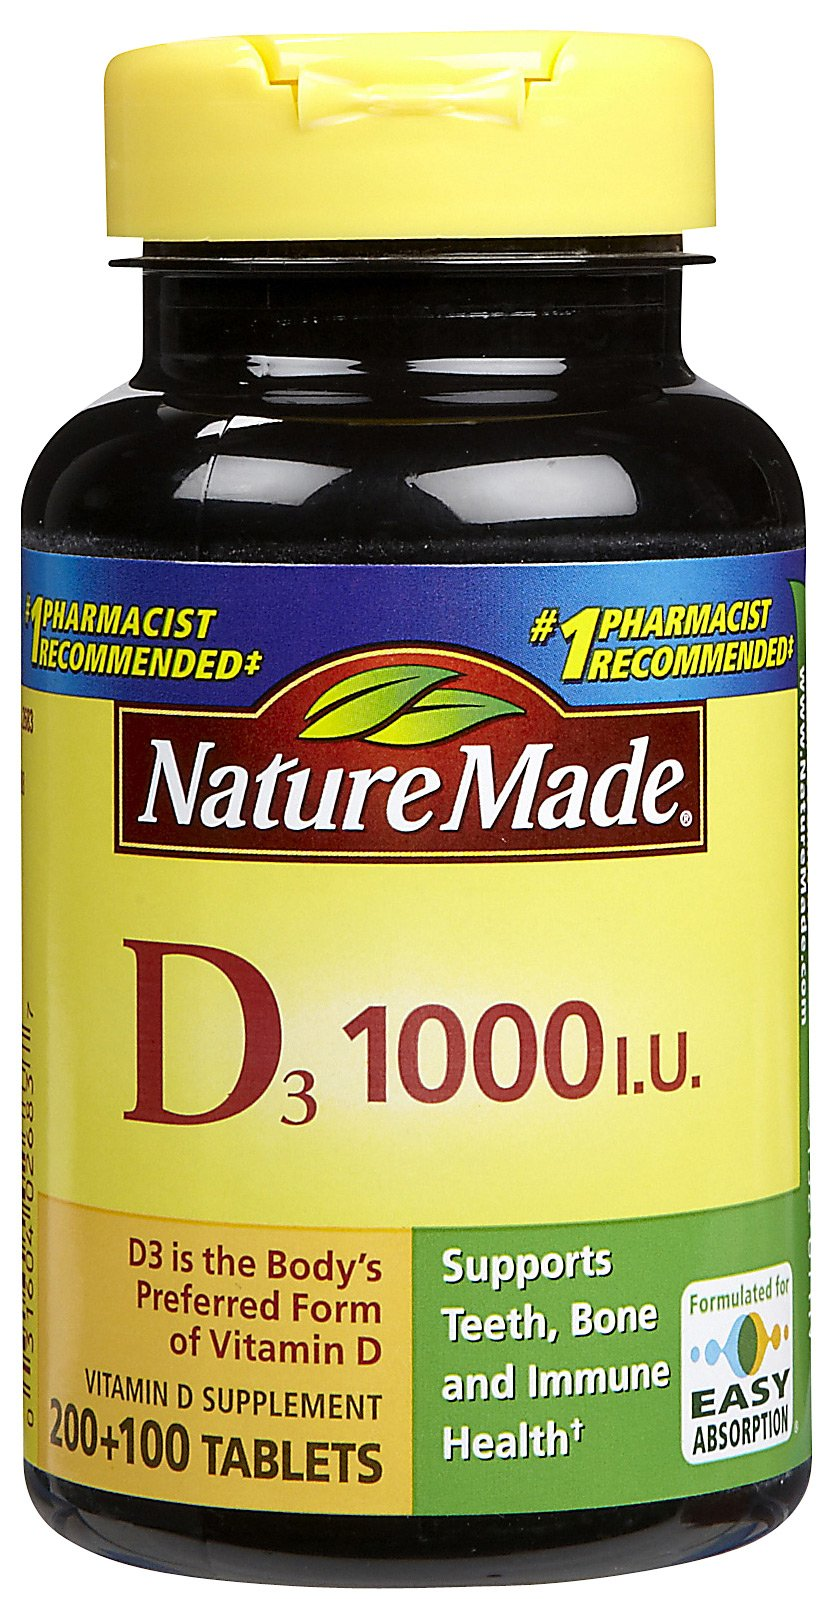 Nature Made Vitamin D Only $1.49 at Walgreens